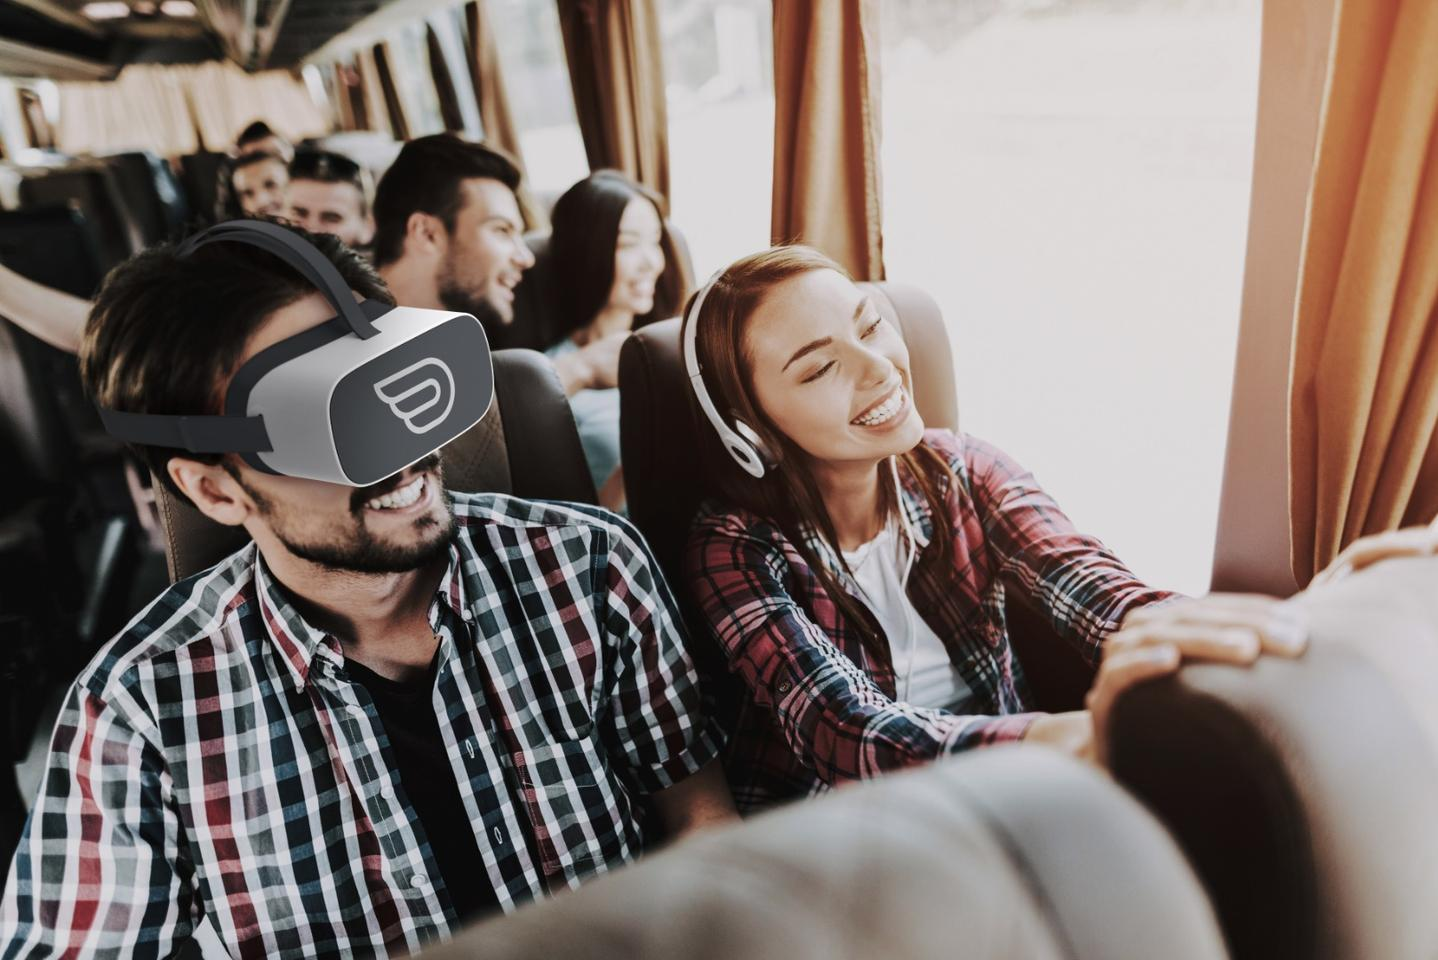 """Passengers booking """"panorama seats"""" on select Las Vegas FlixBus routes can opt for a VR headset to help pass the time on long journeys"""